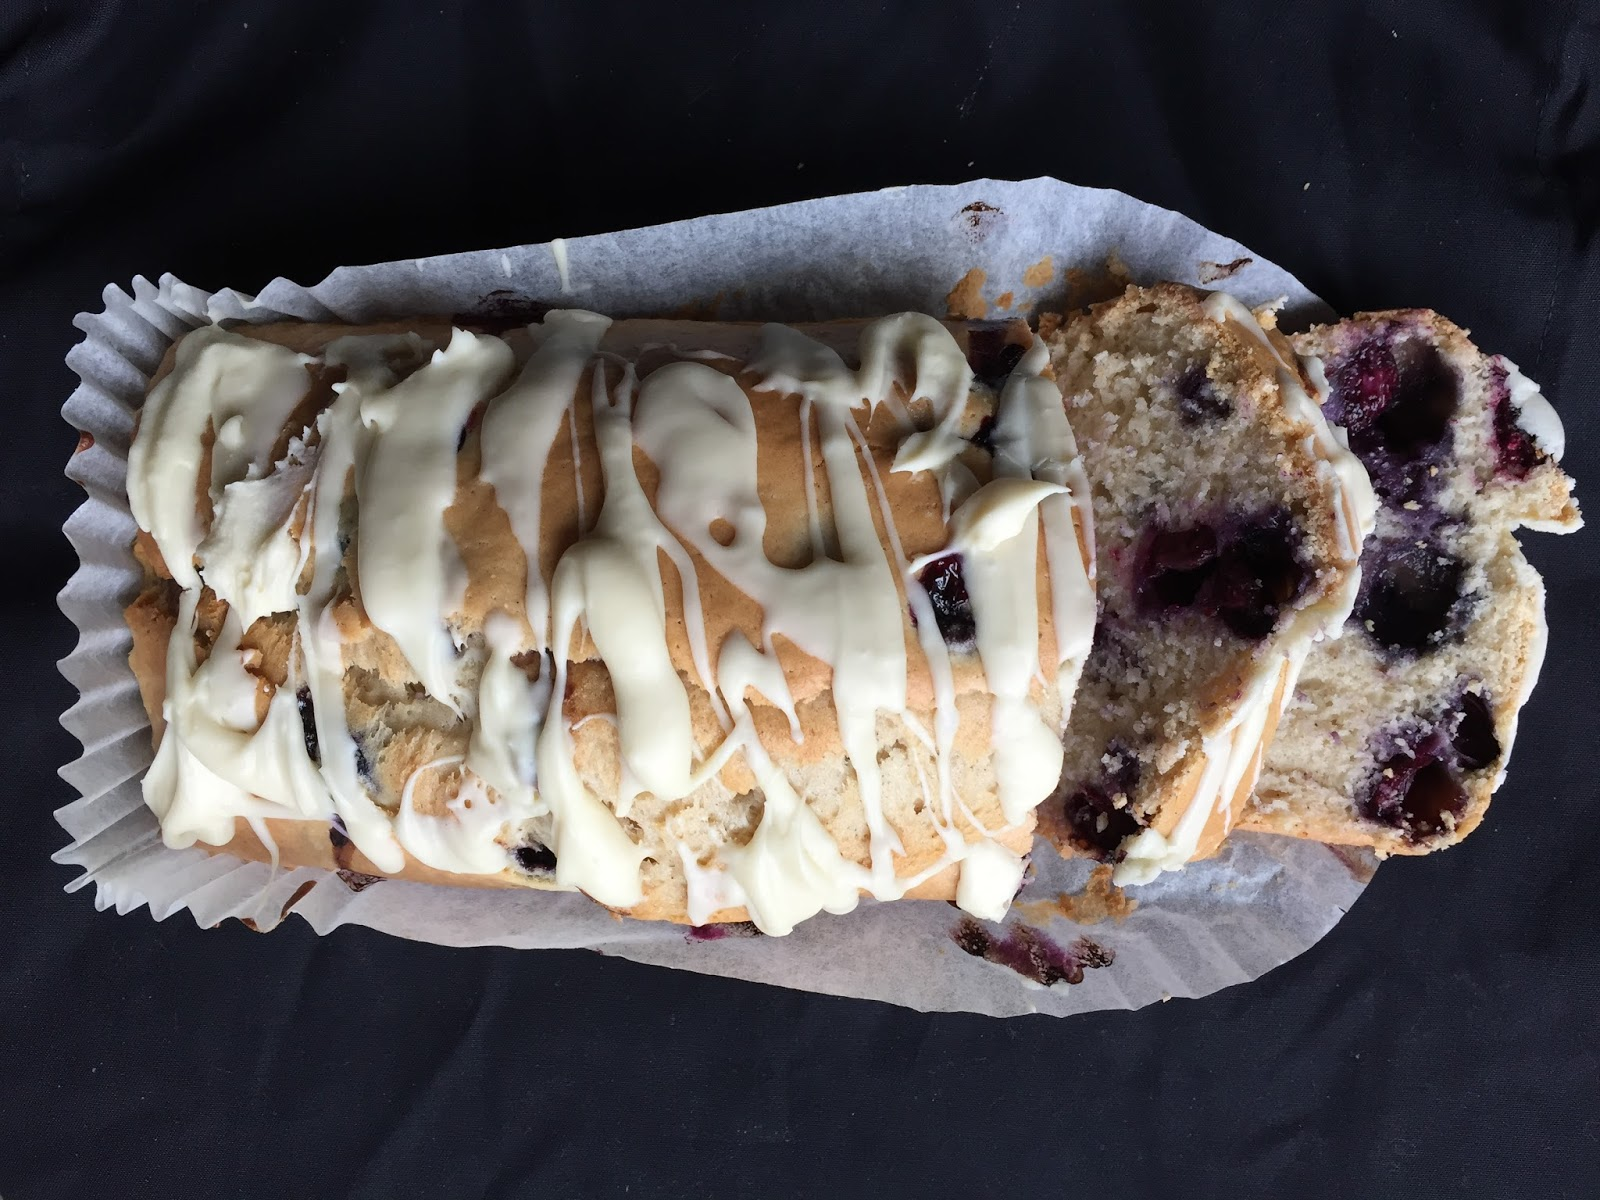 Blueberry Loaf Cake with a White Chocolate Topping